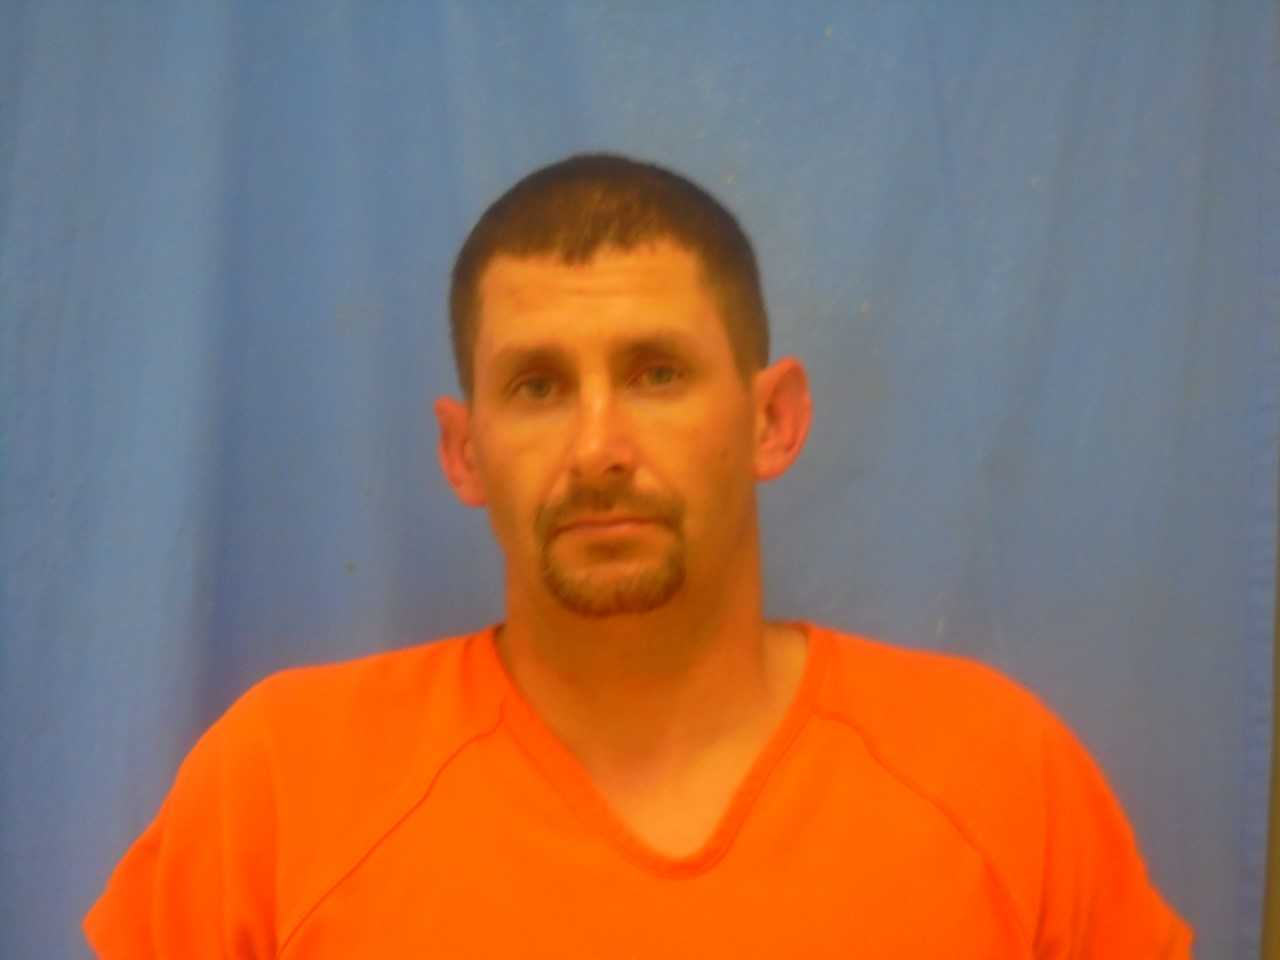 Deepwater man arrested after woman shot during disturbance in Henry County Thursday evening